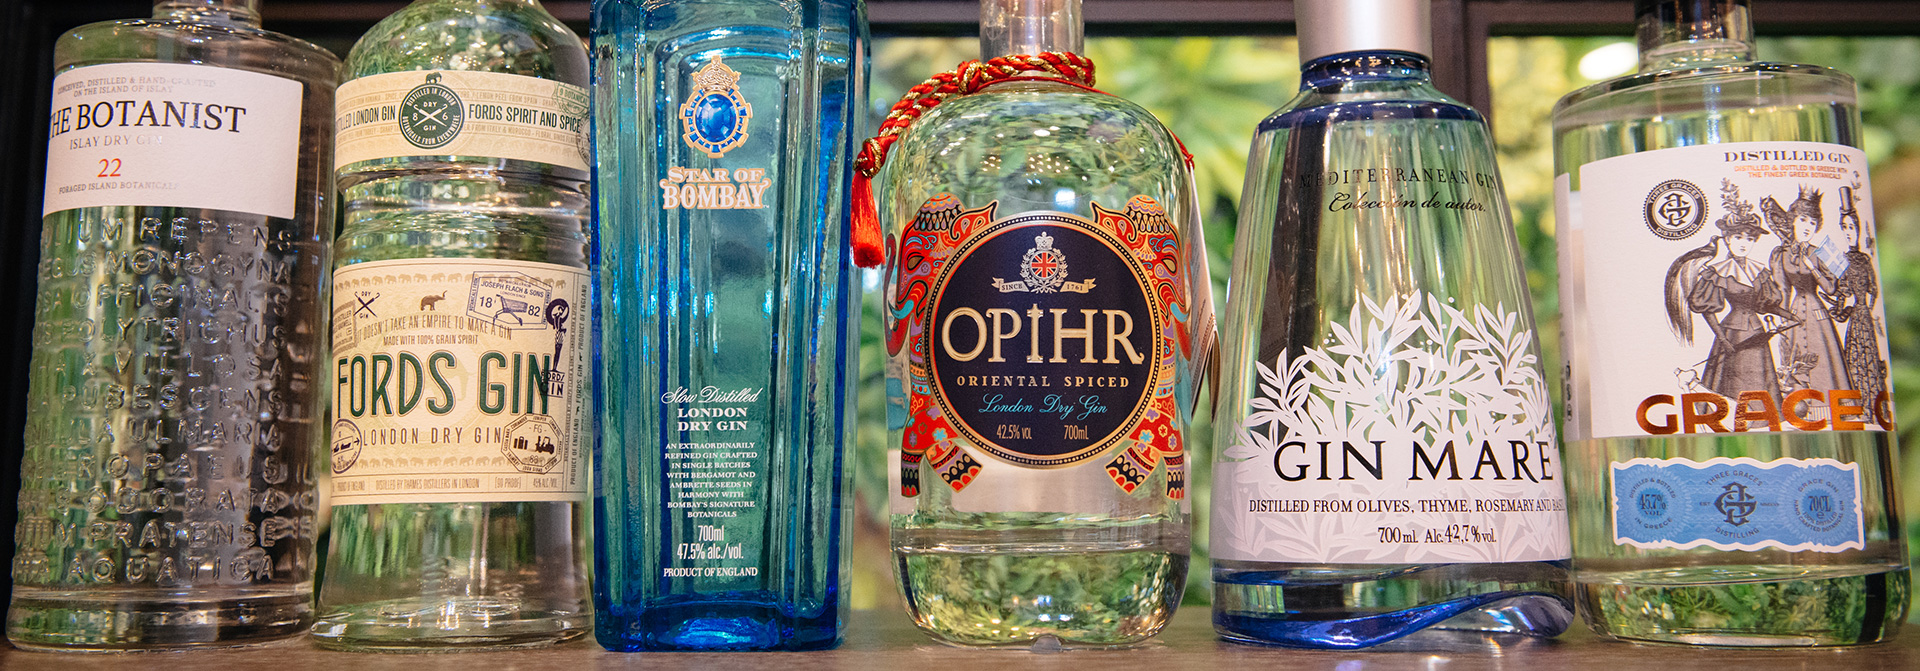 the tasters club gin tasting day amber The Botanist Fords Star of Bombay Opihr Gin Mare Grace Gin